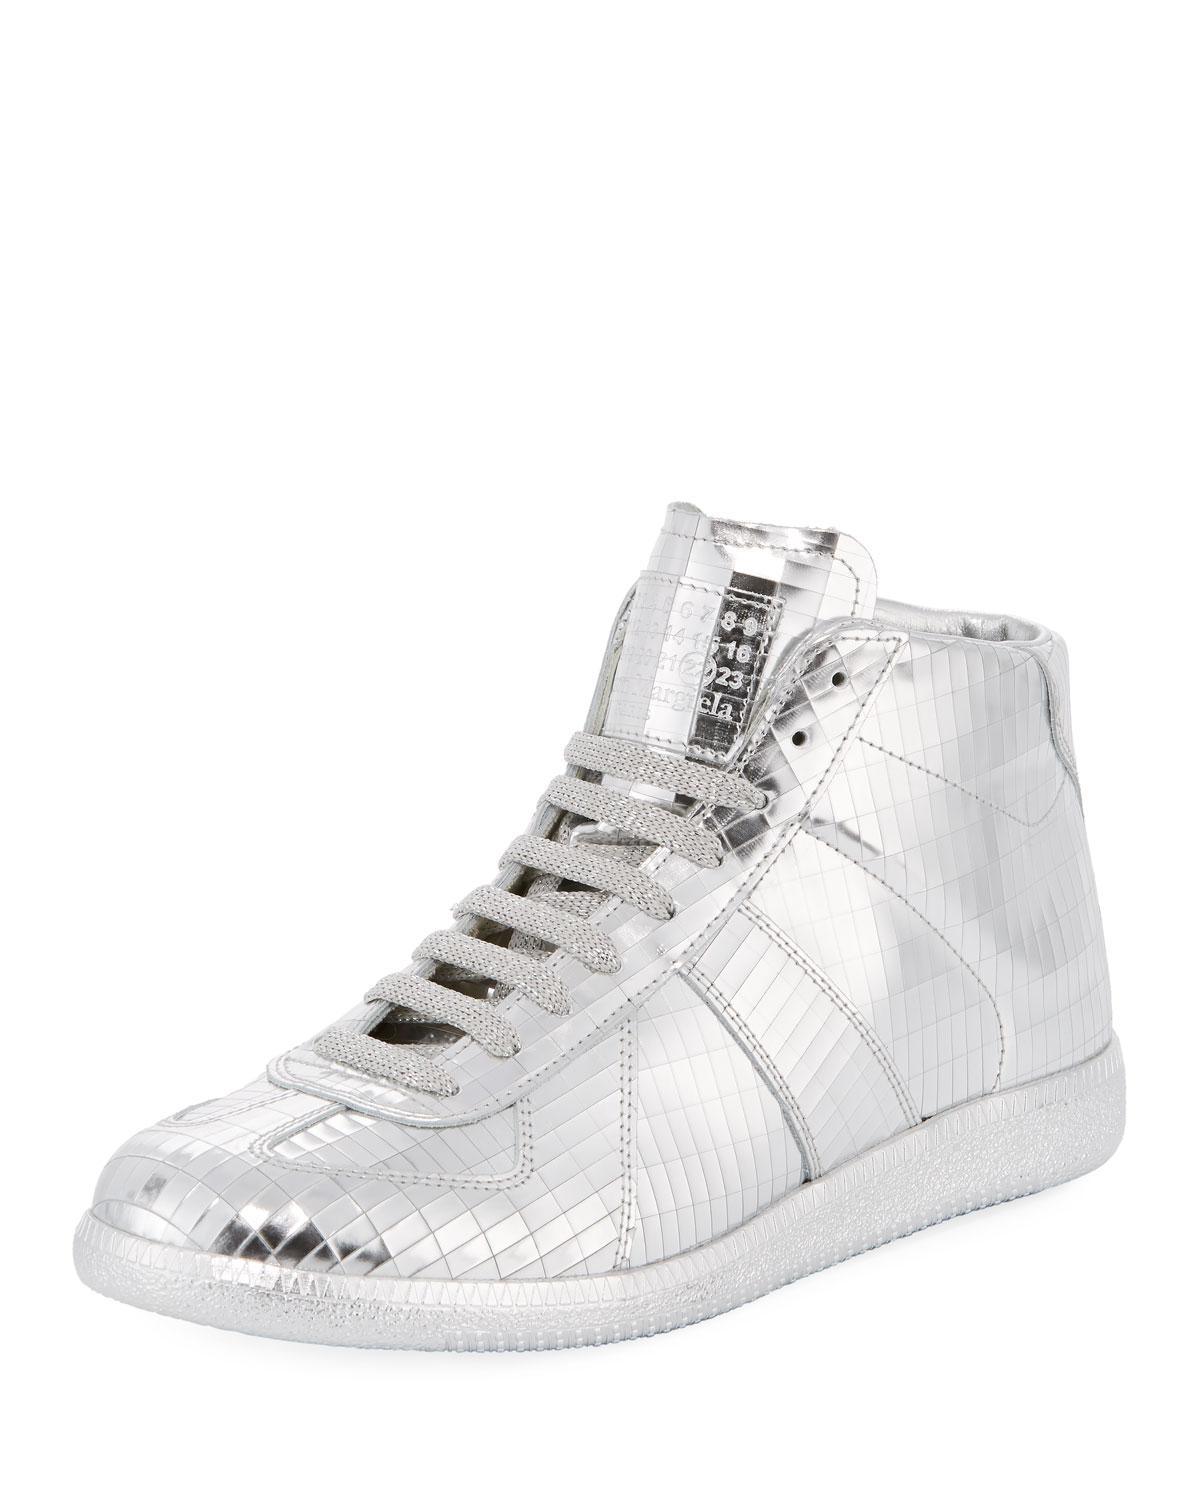 Replica hi-top sneakers - Metallic Maison Martin Margiela BQgGG